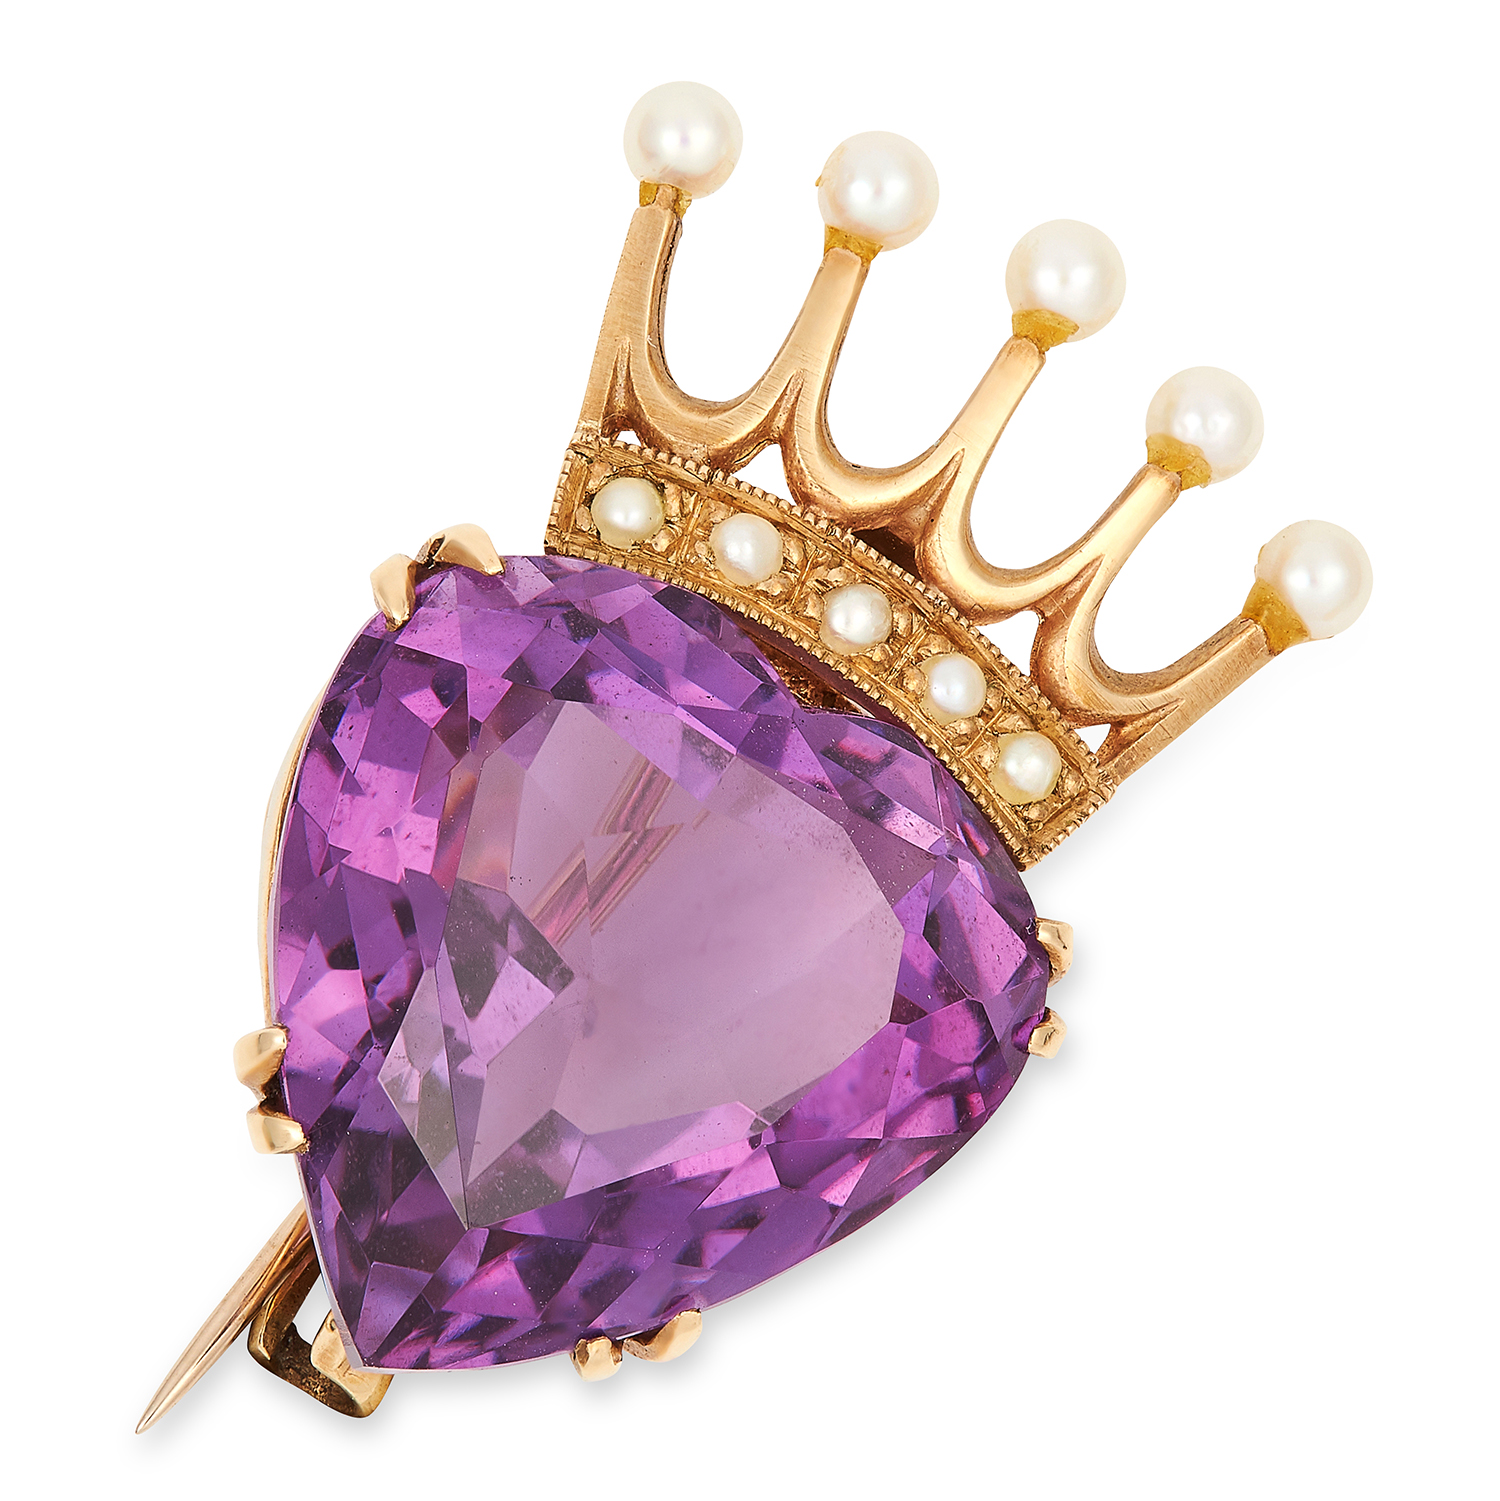 Los 58 - AMETHYST AND PEARL BROOCH / PENDANT set with a pear cut amethyst and seed pearls in a crown motif,